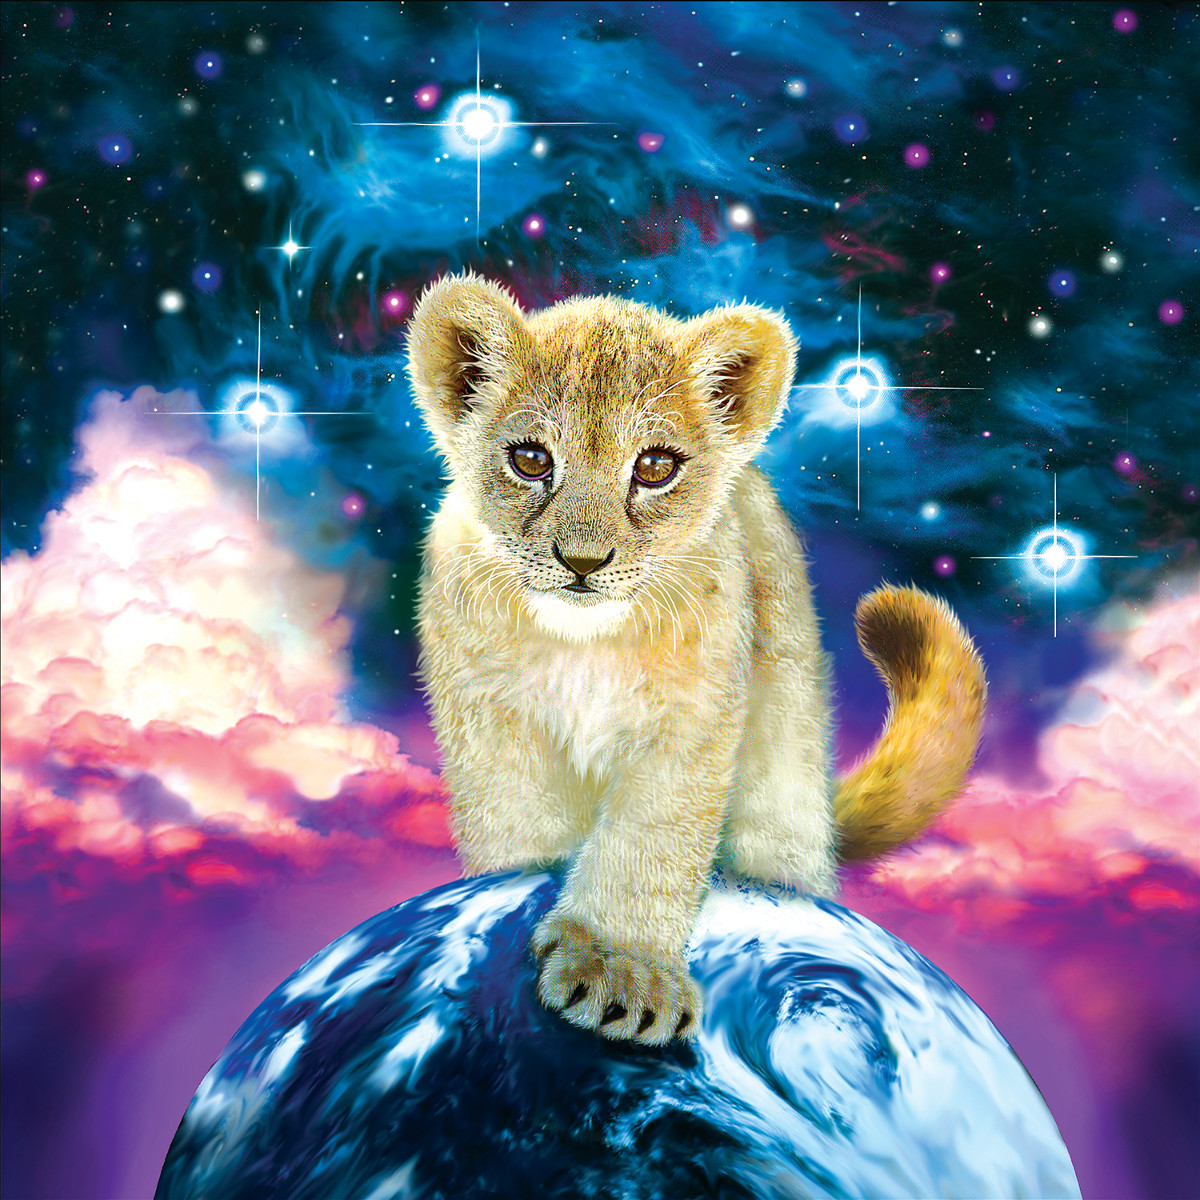 Moonlit Cub - Scratch and Dent Jigsaw Puzzle